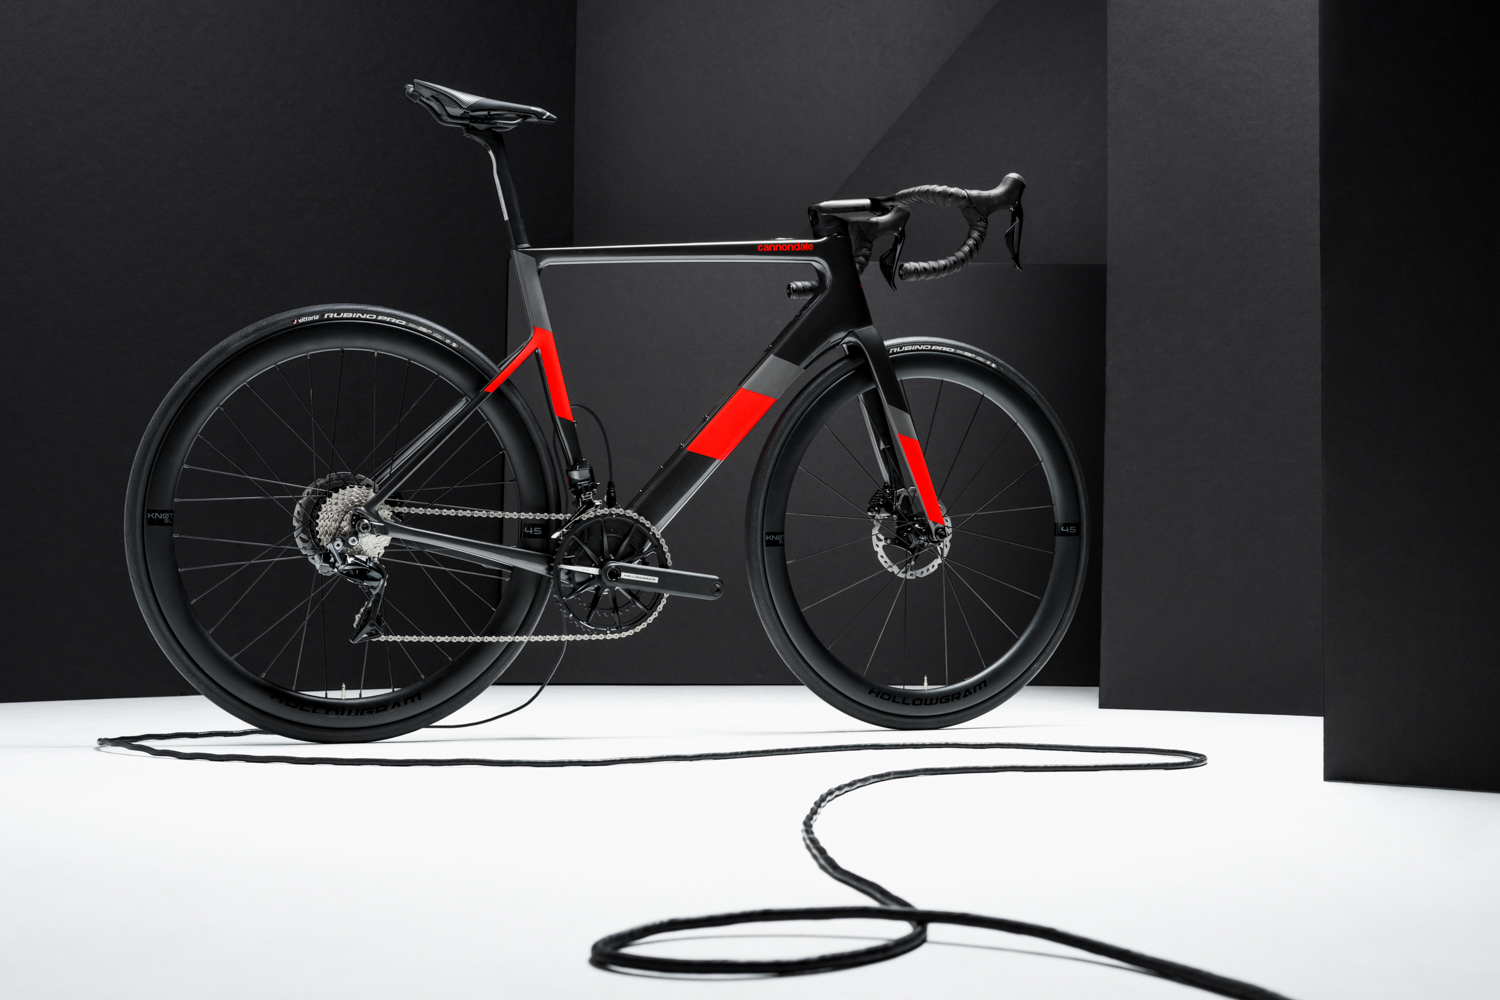 Cannondale electric bicycles